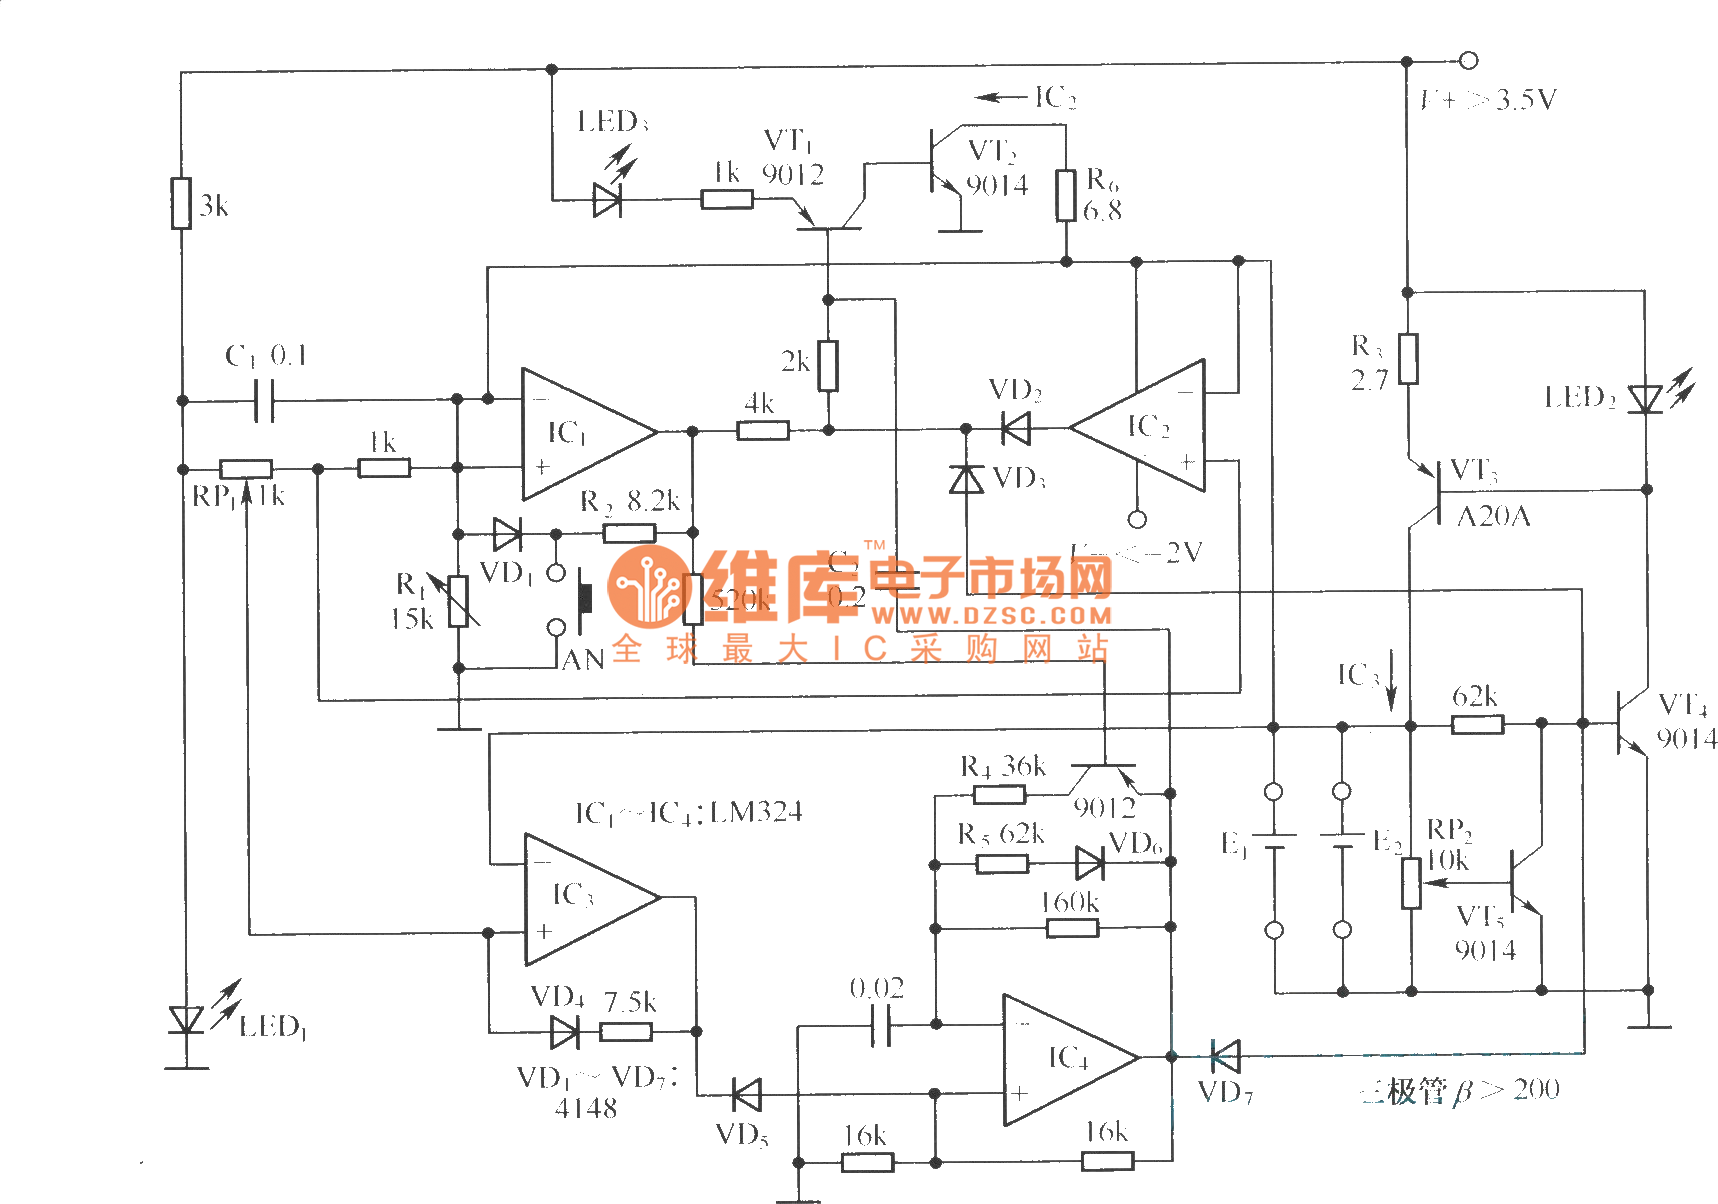 New type Ni-Cd battery charger circuit schematic diagram ... Nicd Battery Charger Schematic on ion battery charger, battery pack charger, oem battery charger, 1300mah battery charger, nickel battery charger, 24v battery charger, a123 battery charger, dewalt battery charger, nimh battery charger, rechargeable battery charger, ac battery charger, lead battery charger, 14.4v battery charger, standard battery charger, 3000mah battery charger, 4.8v battery charger, electric battery charger, nicad battery charger, panasonic battery charger, 14.4 volt battery charger,